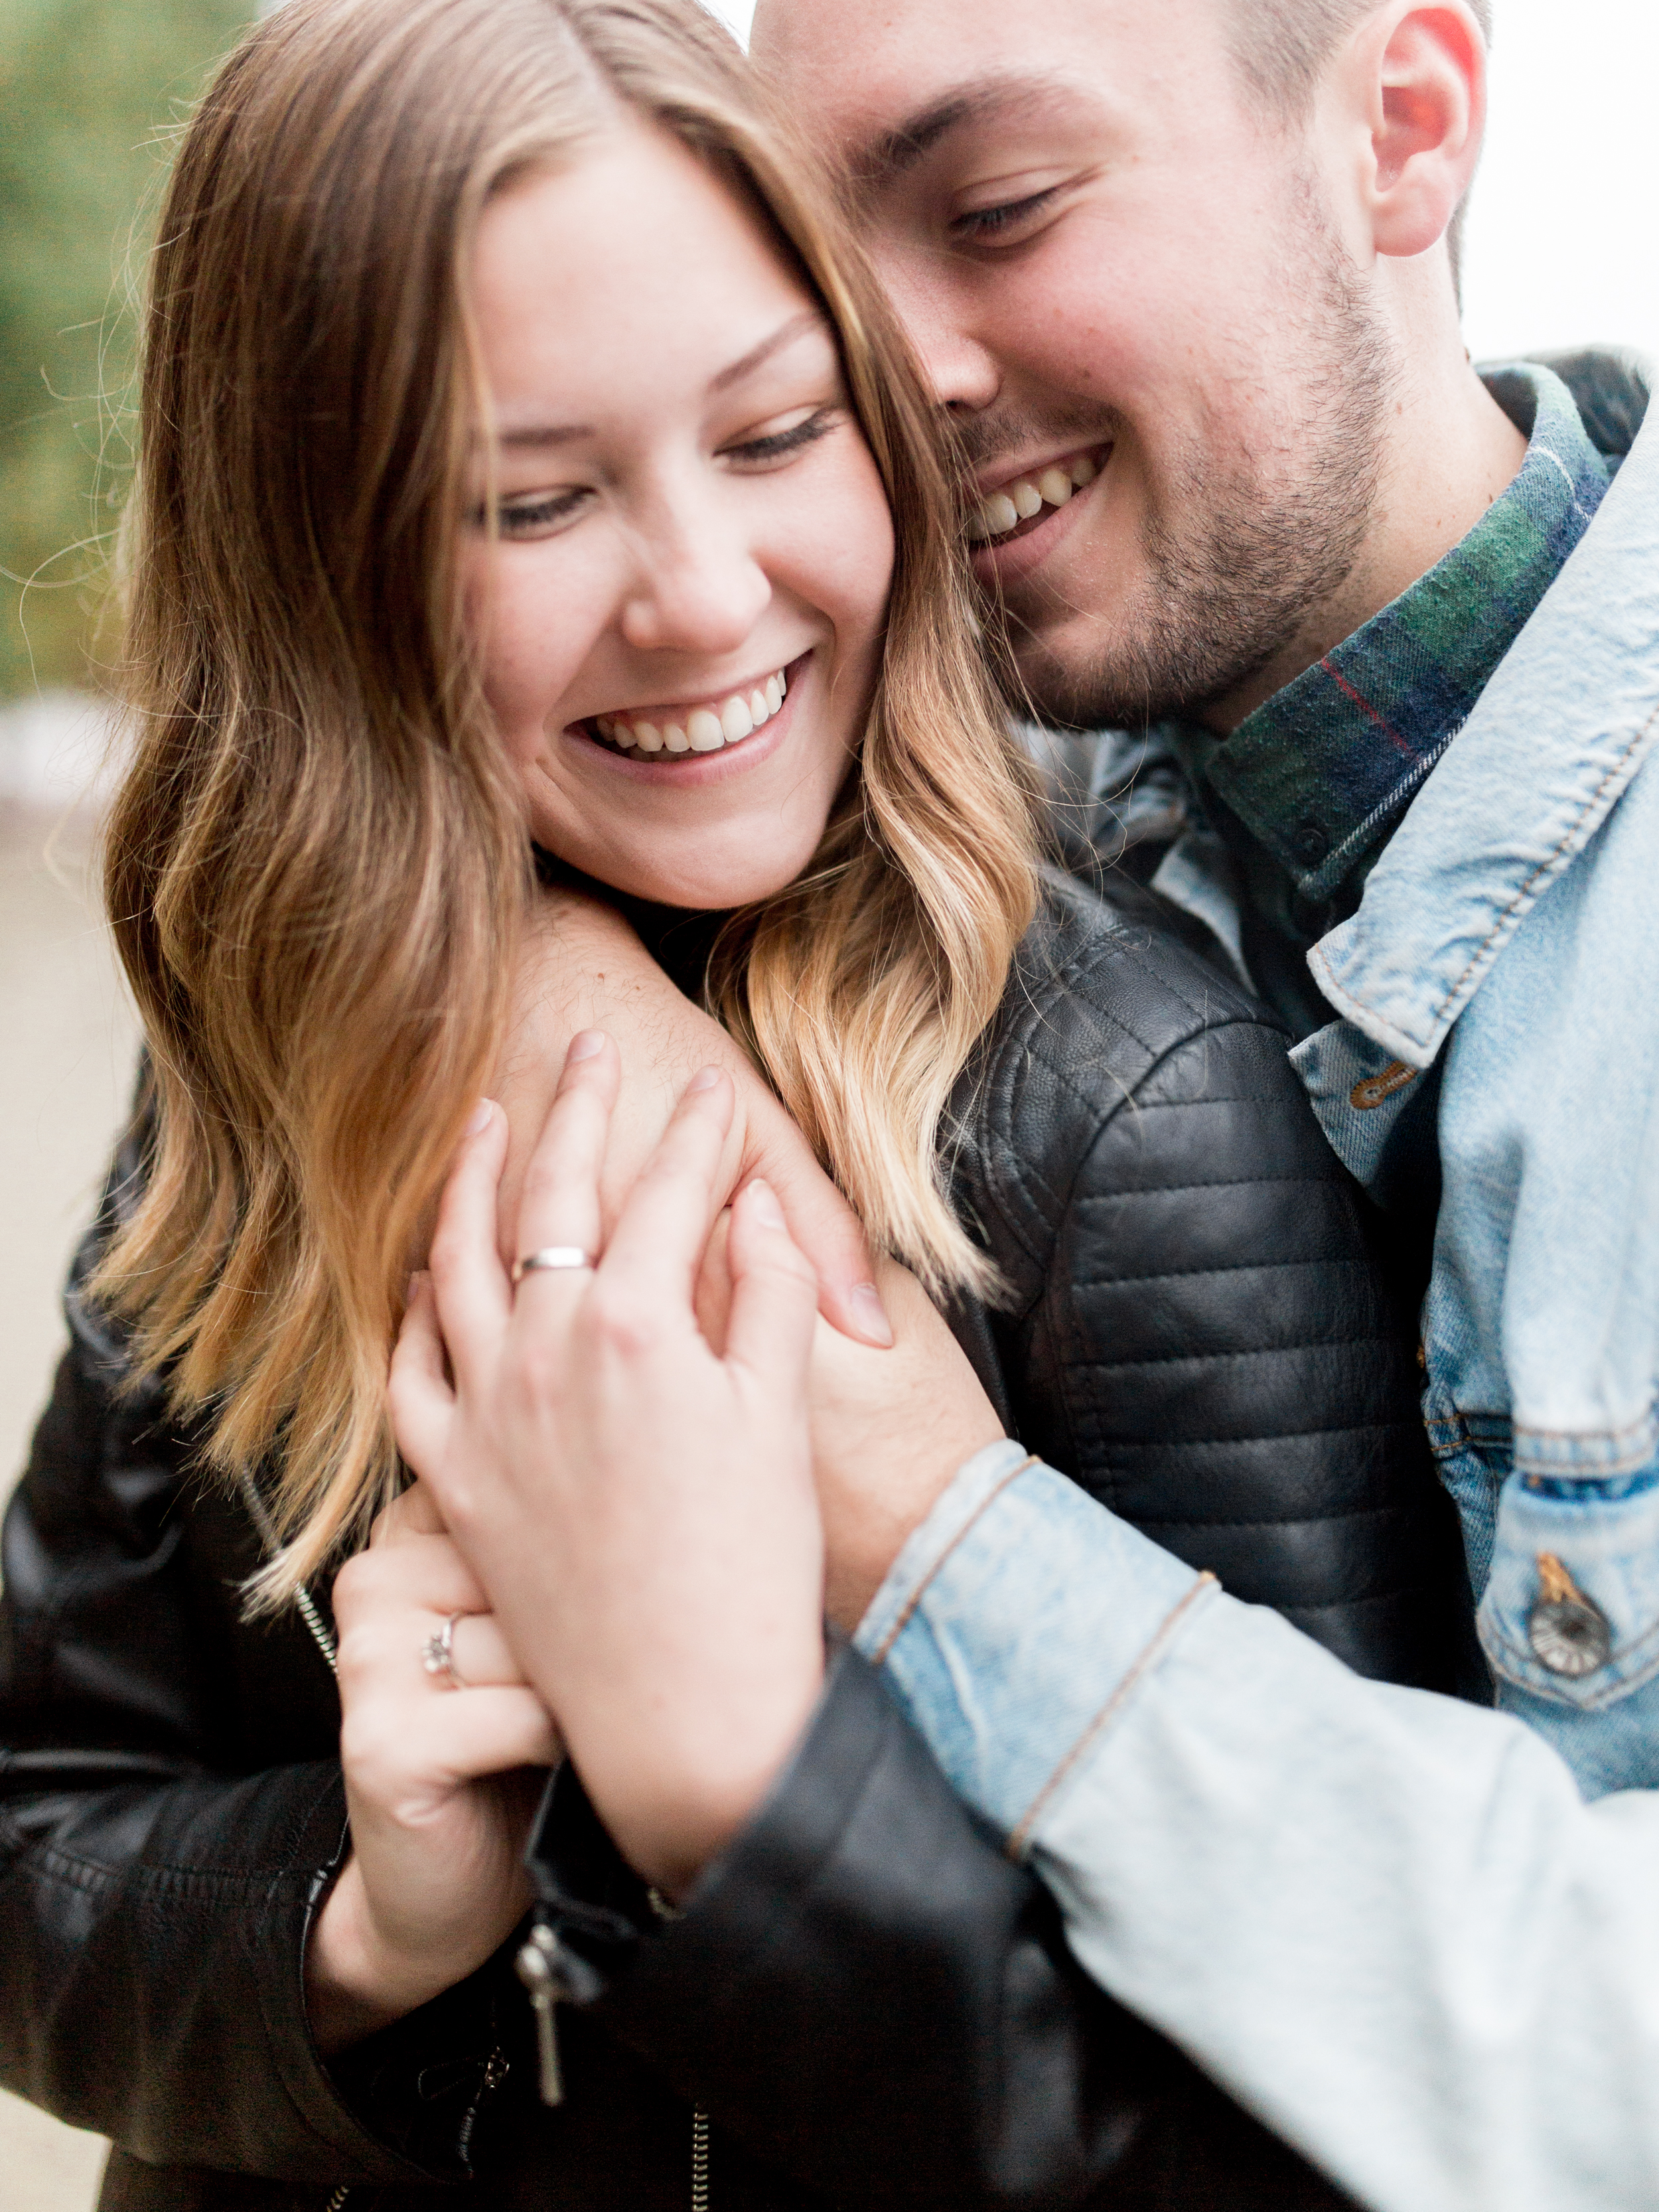 Cutest Engagement Pics - Reasons to take engagement photos - Vancouver Wedding Ideas - Where to take engagement photos in Vancouver - Canadian Fine Art Wedding Photographer - Winnipeg Wedding Photographer - Keila Marie Photography